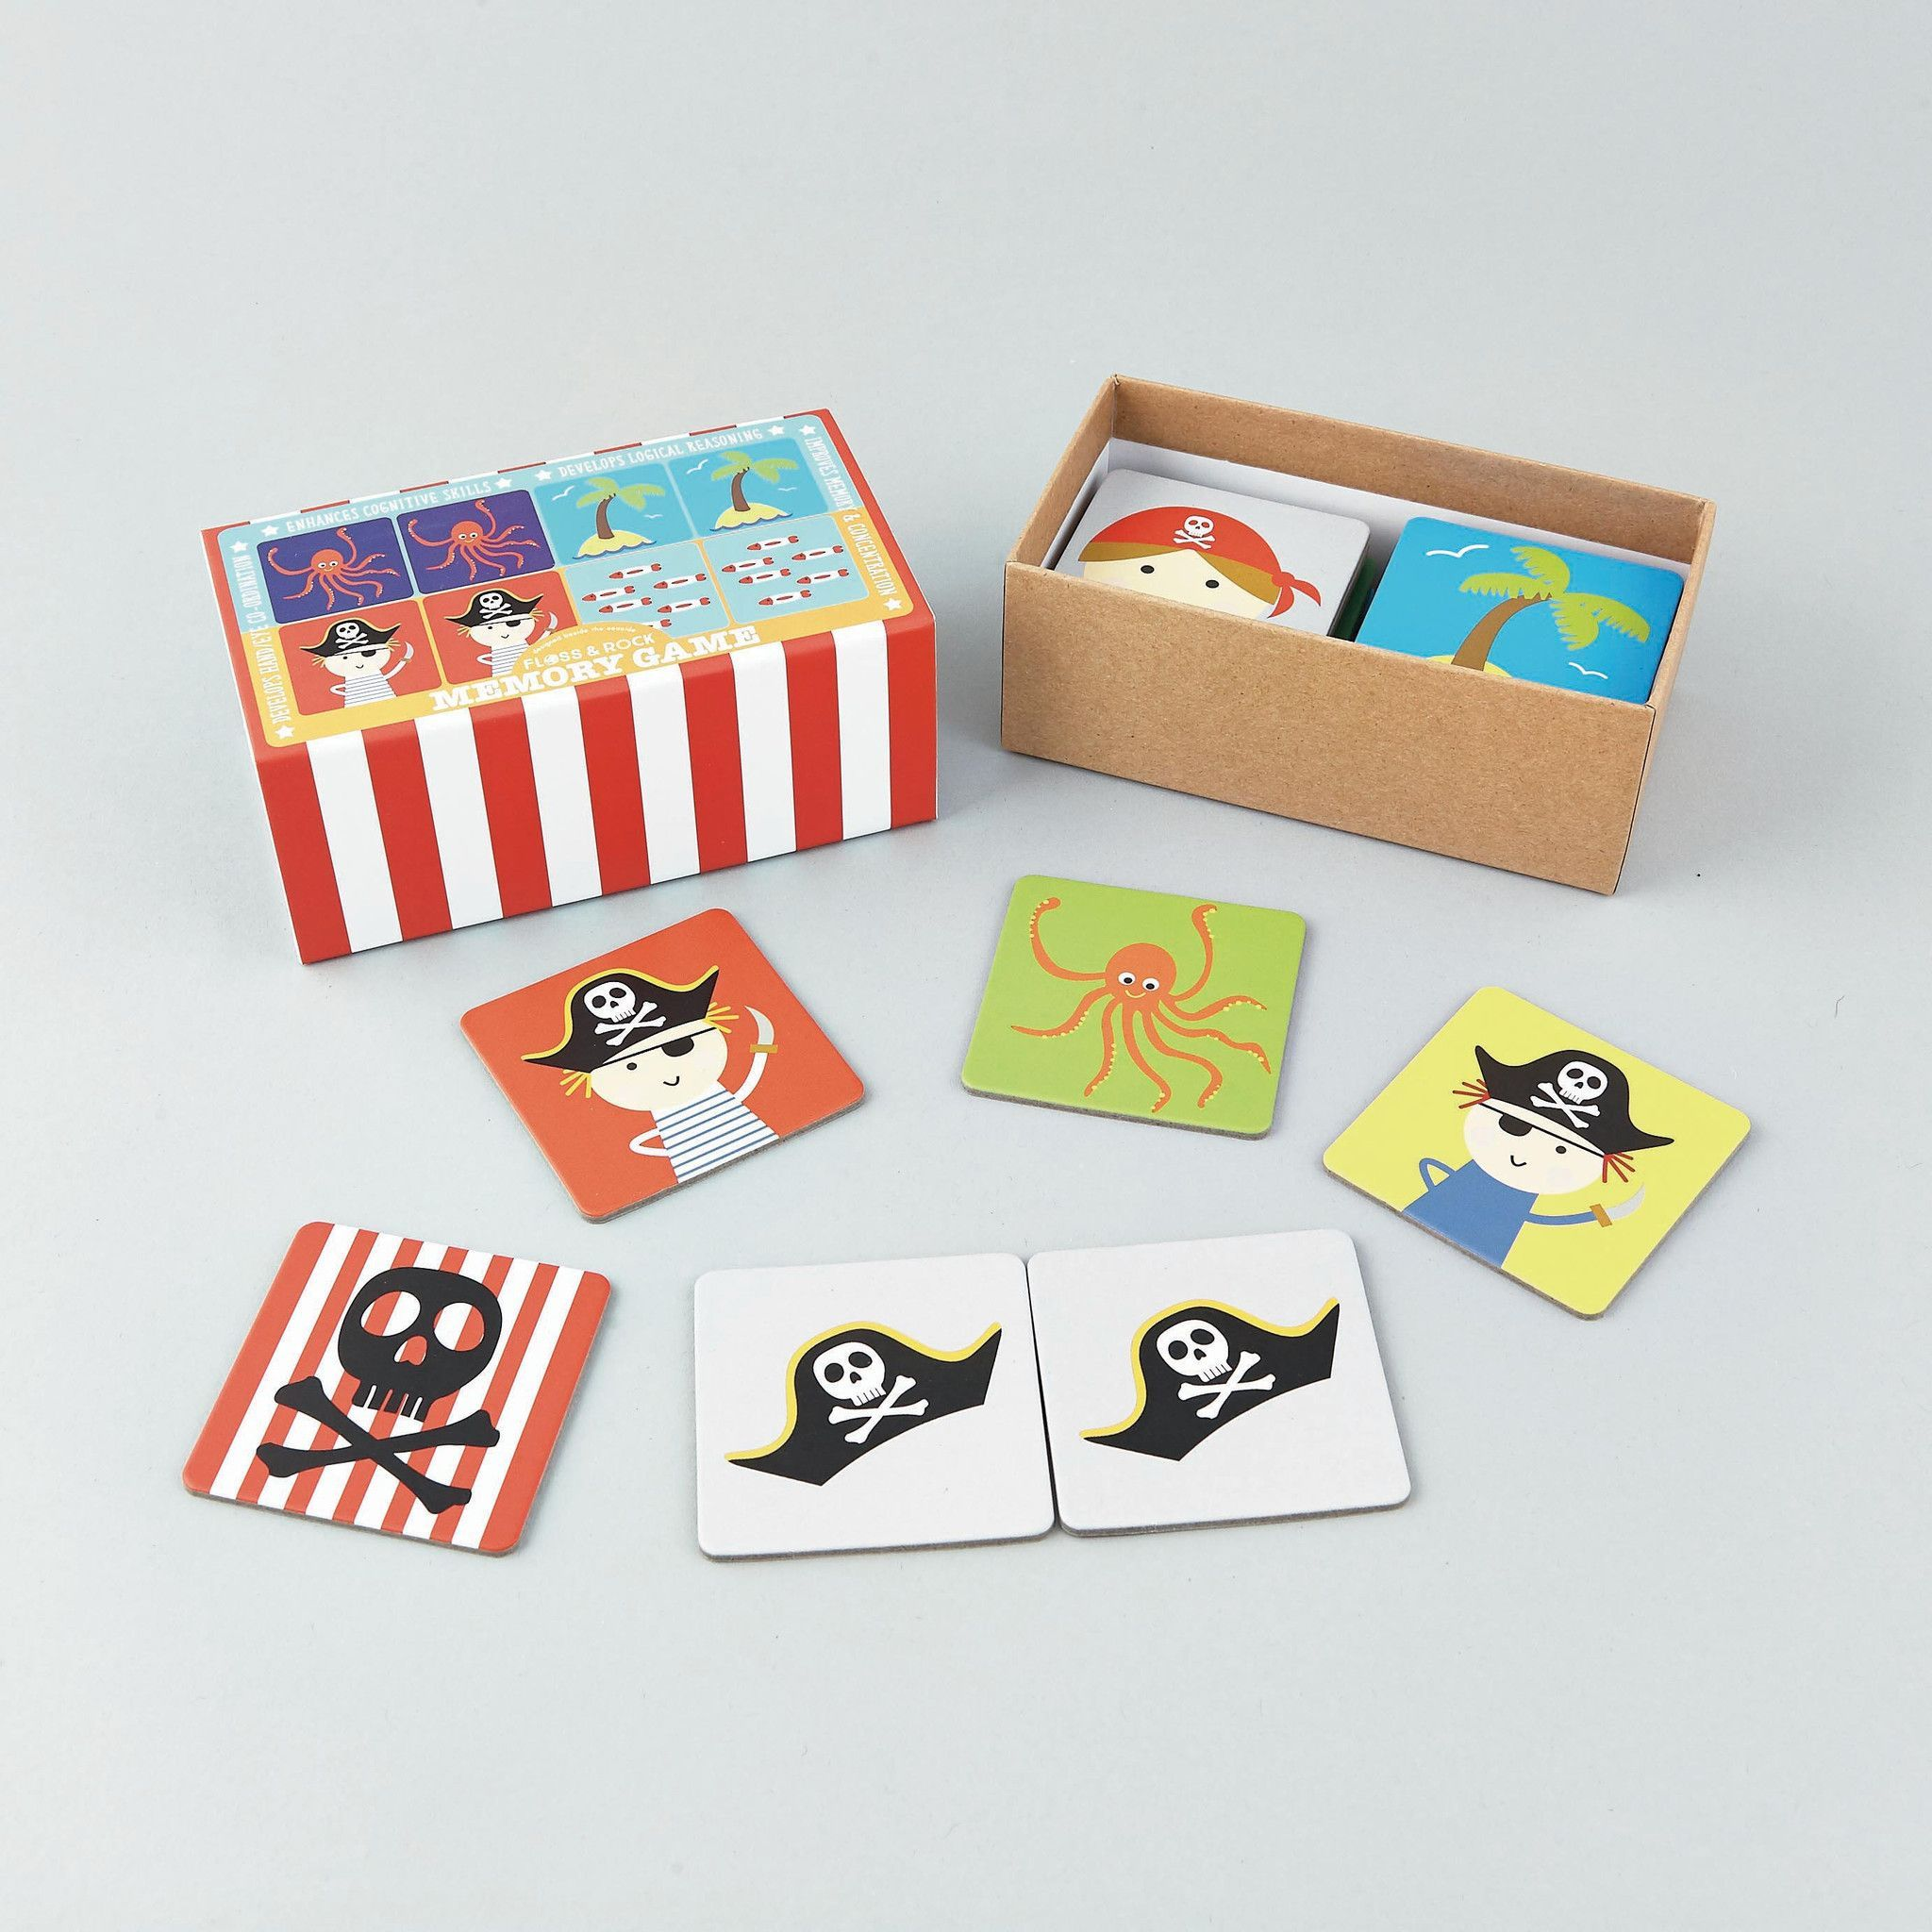 Brand Spankin New Memory Game Pirate Get More Info Here